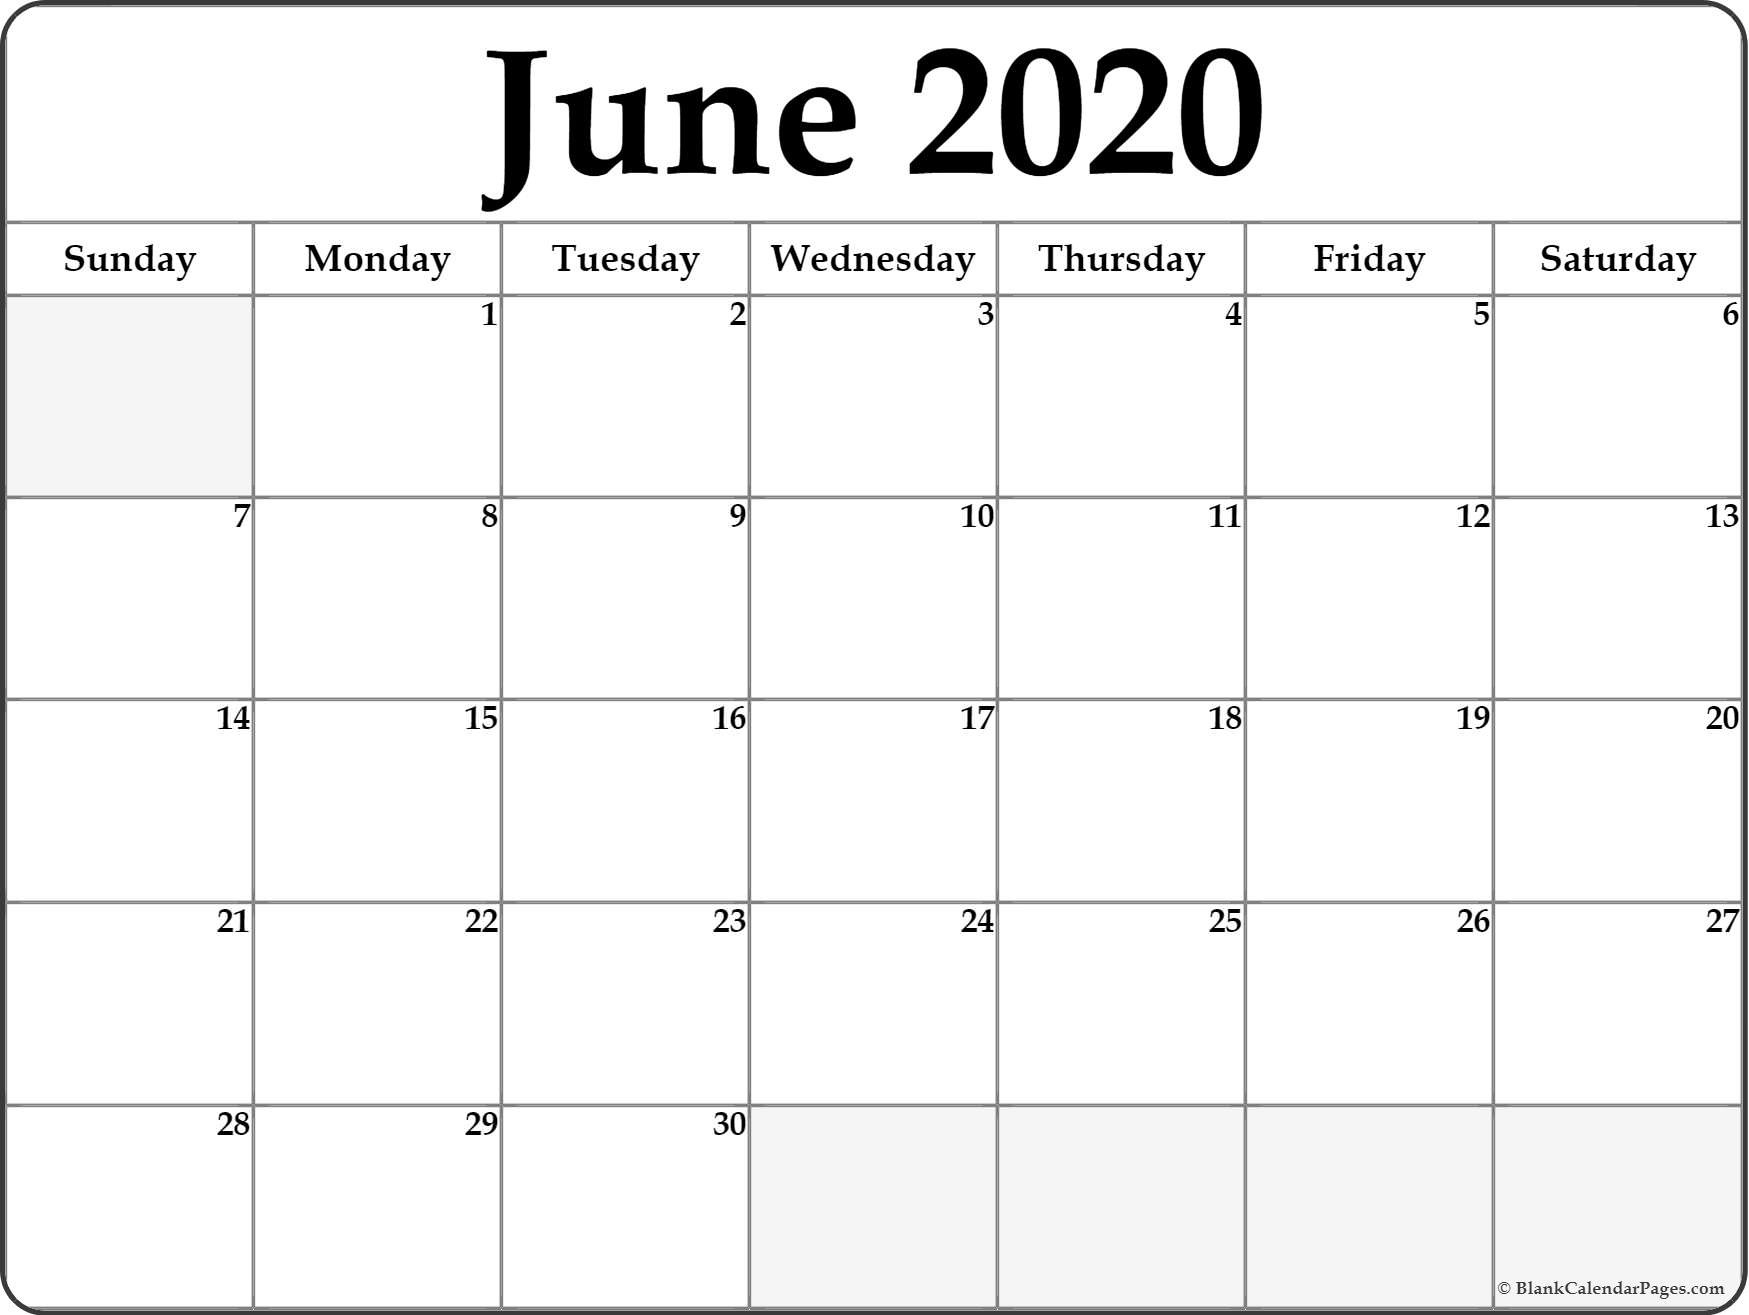 June 2020 Calendar | Free Printable Monthly Calendars intended for Printable Monthly Calendar